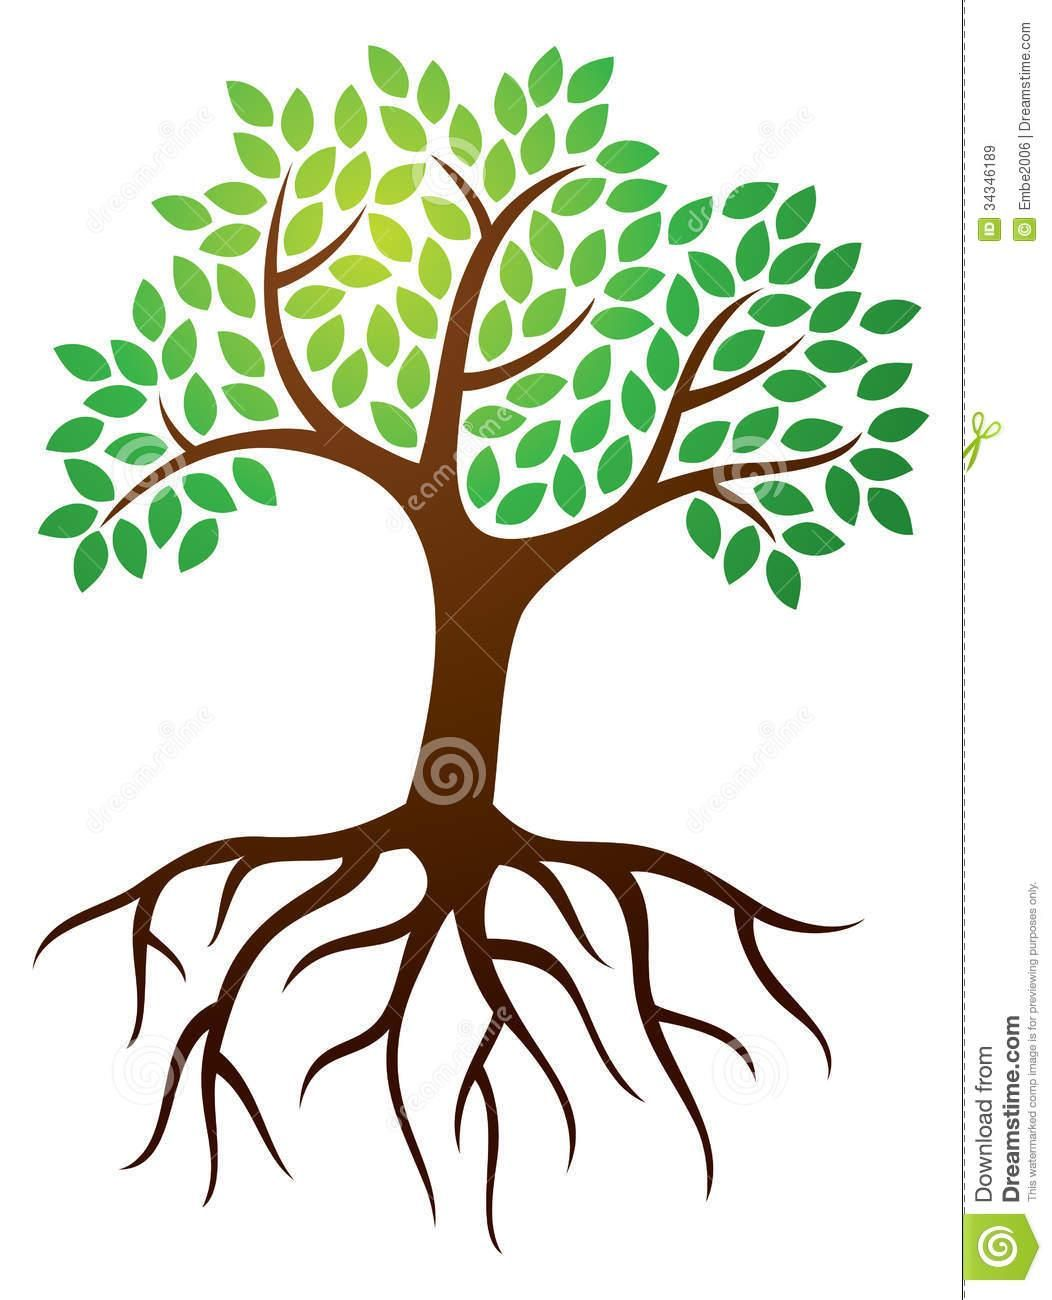 Roots clipart.  awesome family tree